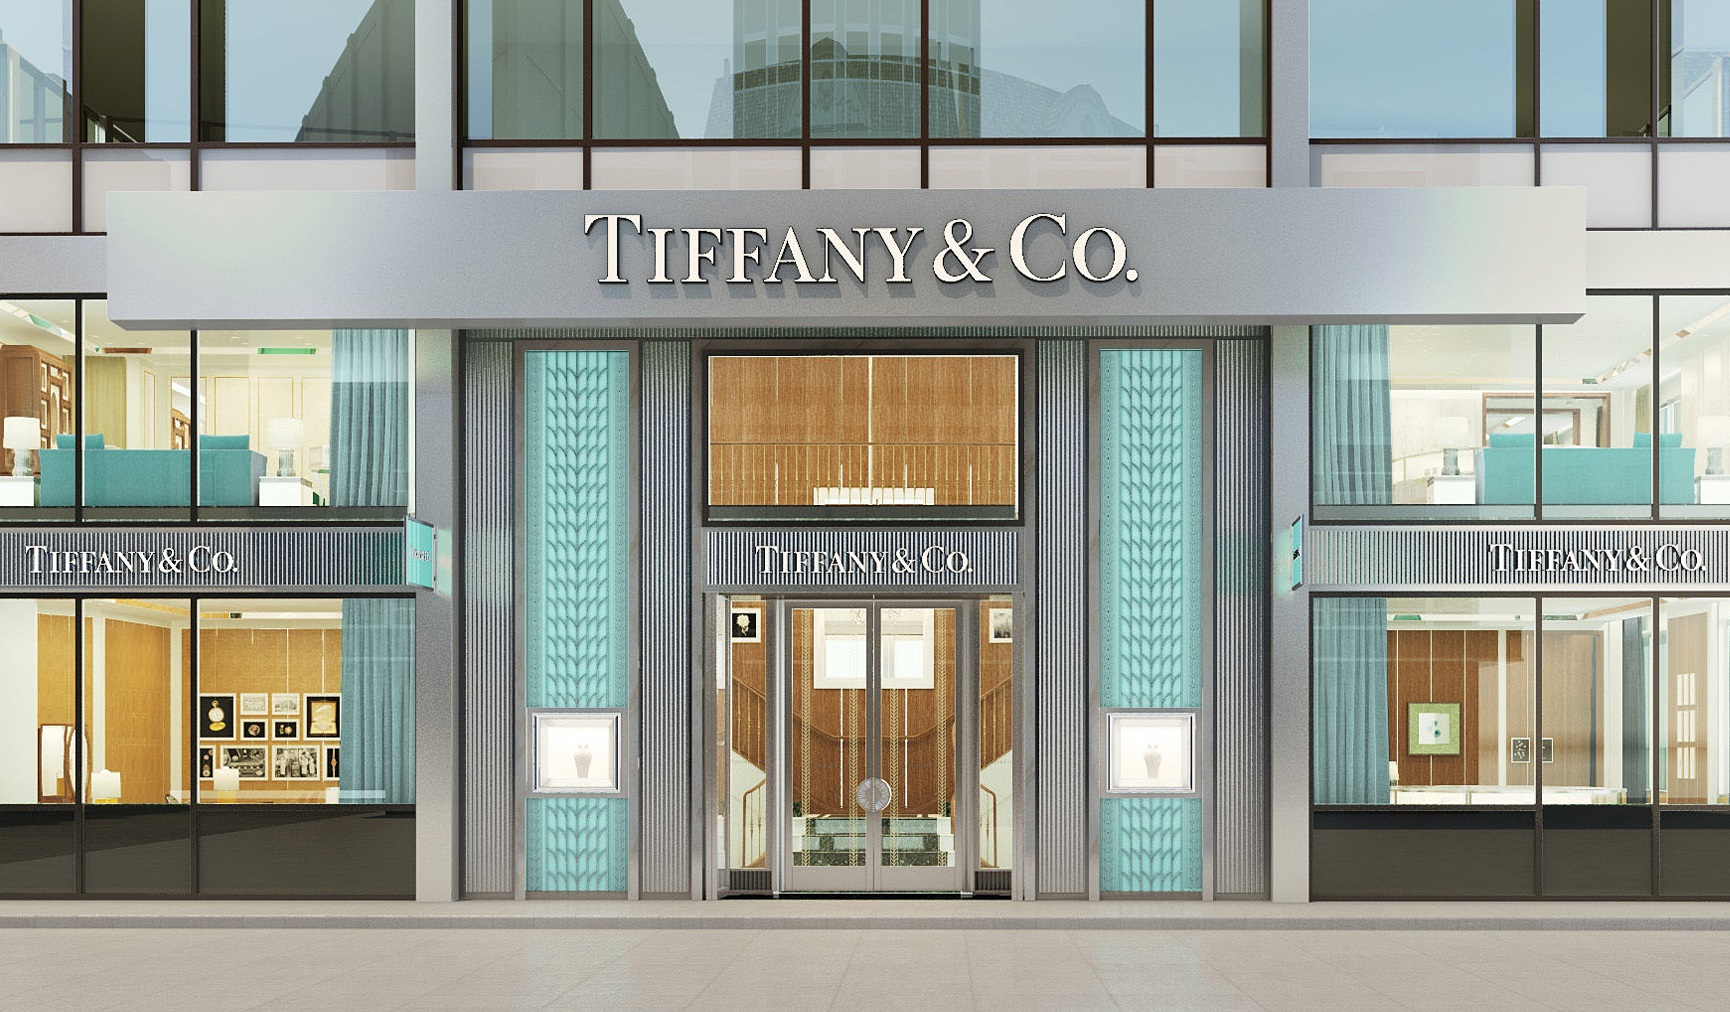 Tiffany & Co.stores open for at least one year saw a decrease of 5% in sales. Image via tiffany.com.